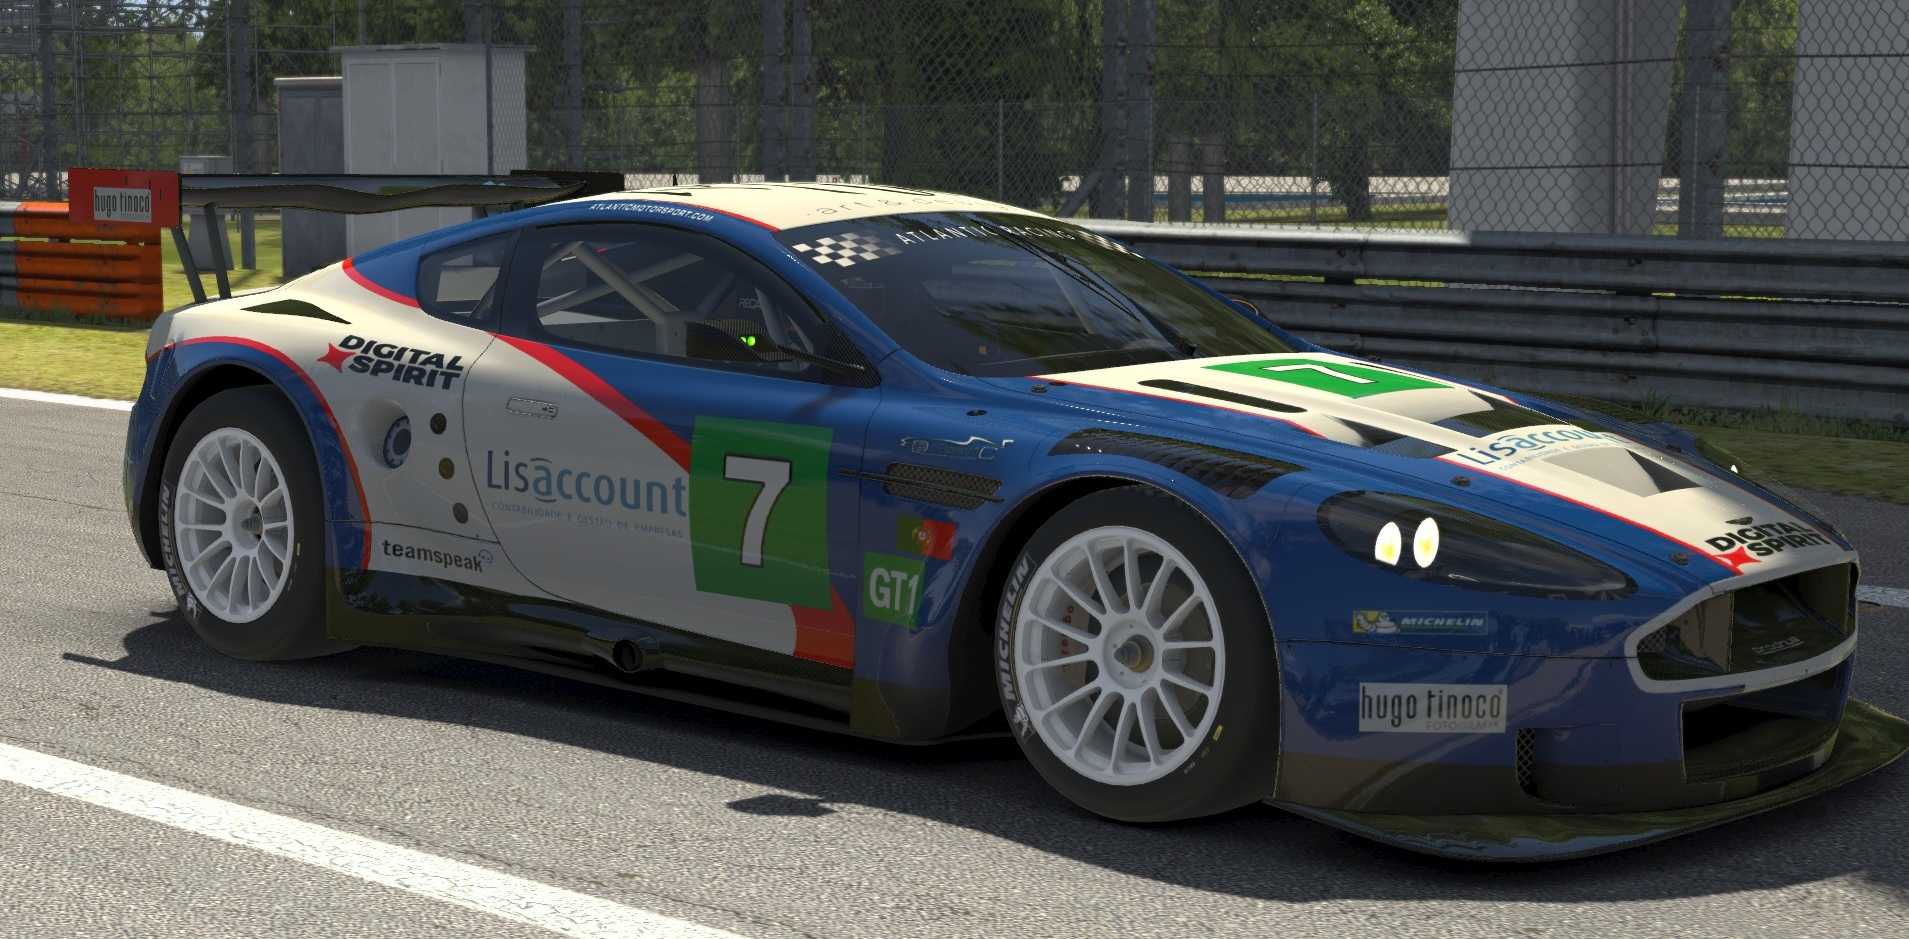 Atlantic Motorsport presents the new Aston DBR9 GT1 for iRacing